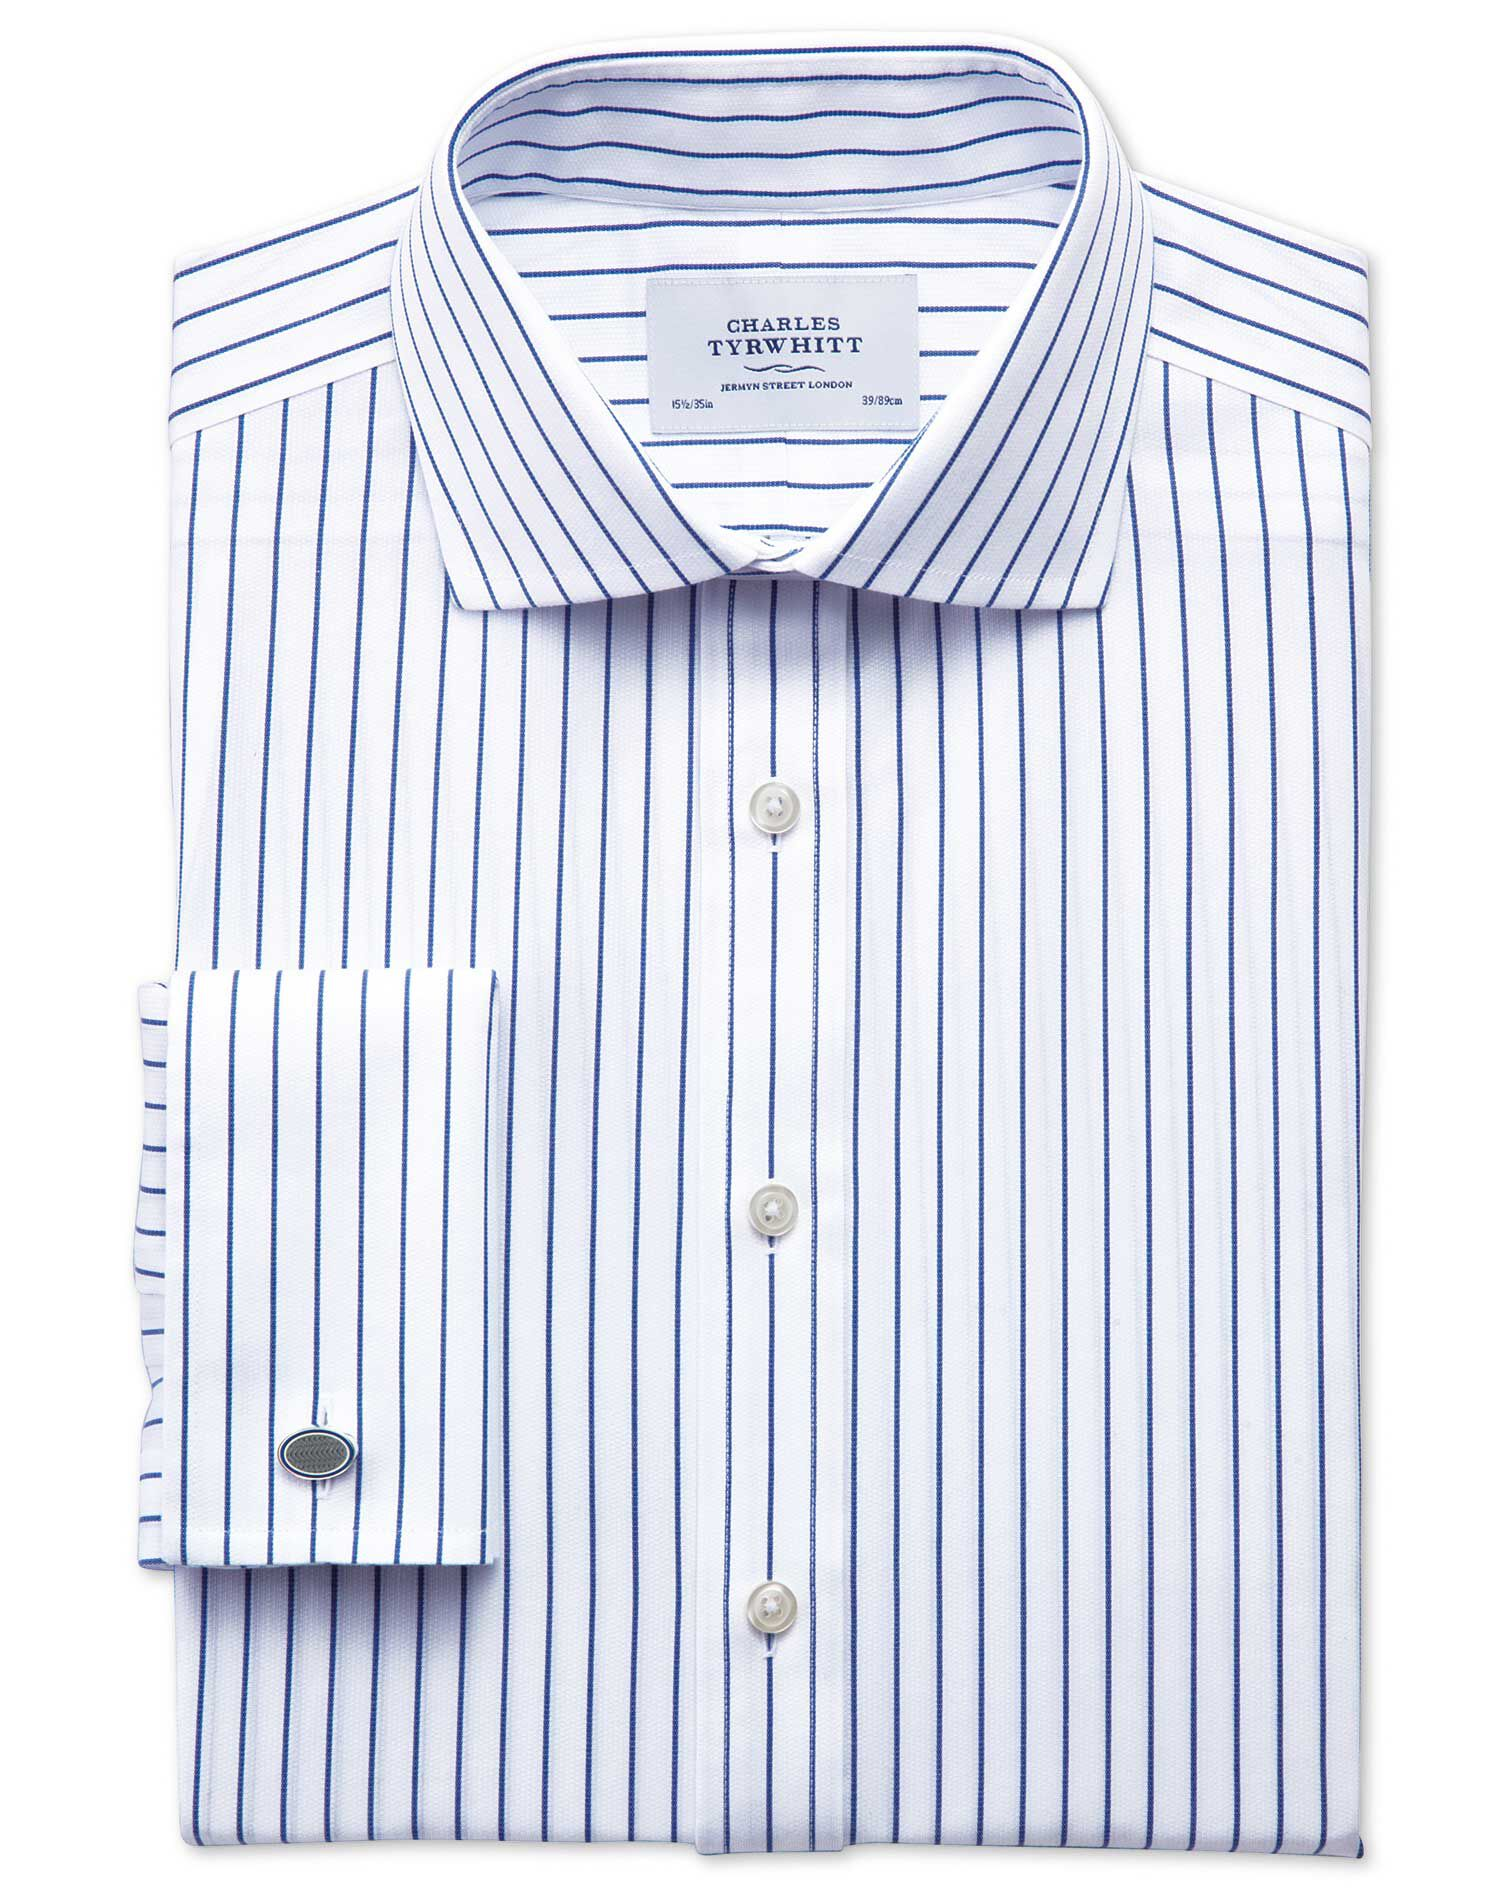 Slim Fit Cutaway Collar Non-Iron Stripe White and Navy Cotton Formal Shirt Double Cuff Size 16/33 by